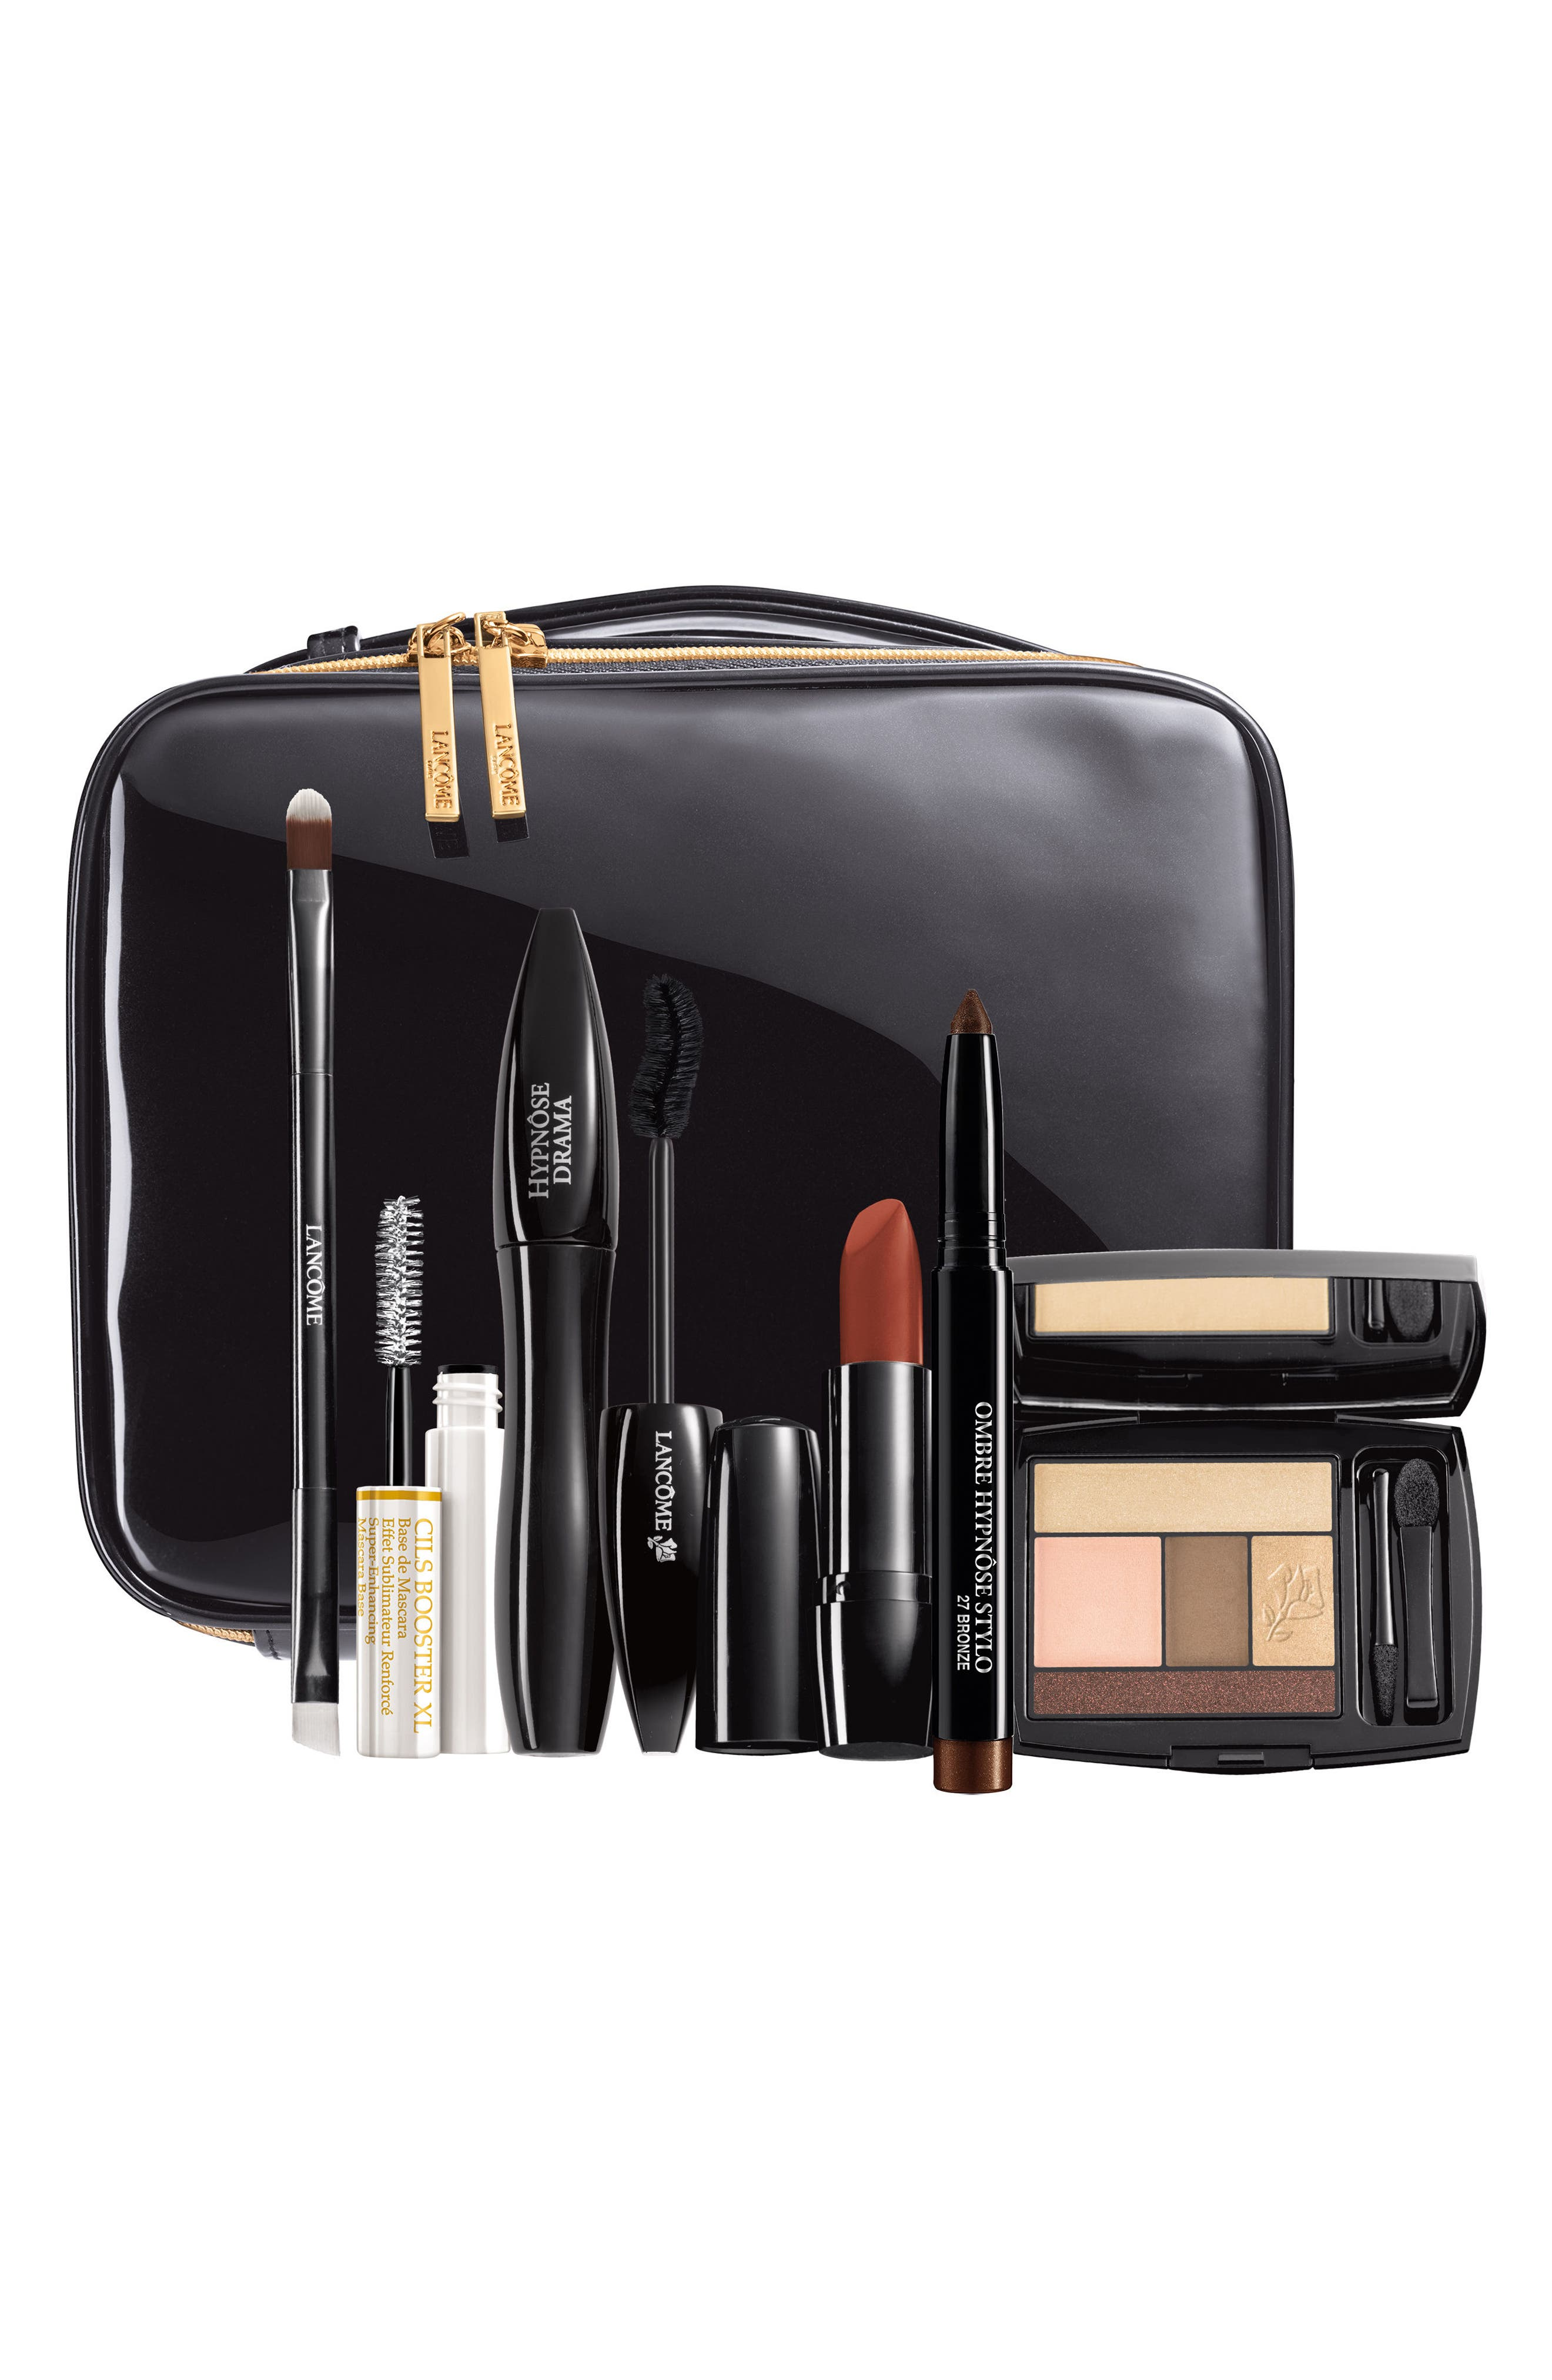 Alternate Image 1 Selected - Lancôme Holiday Makeup Must Haves Collection (Purchase with any Lancôme Purchase) ($167 Value)